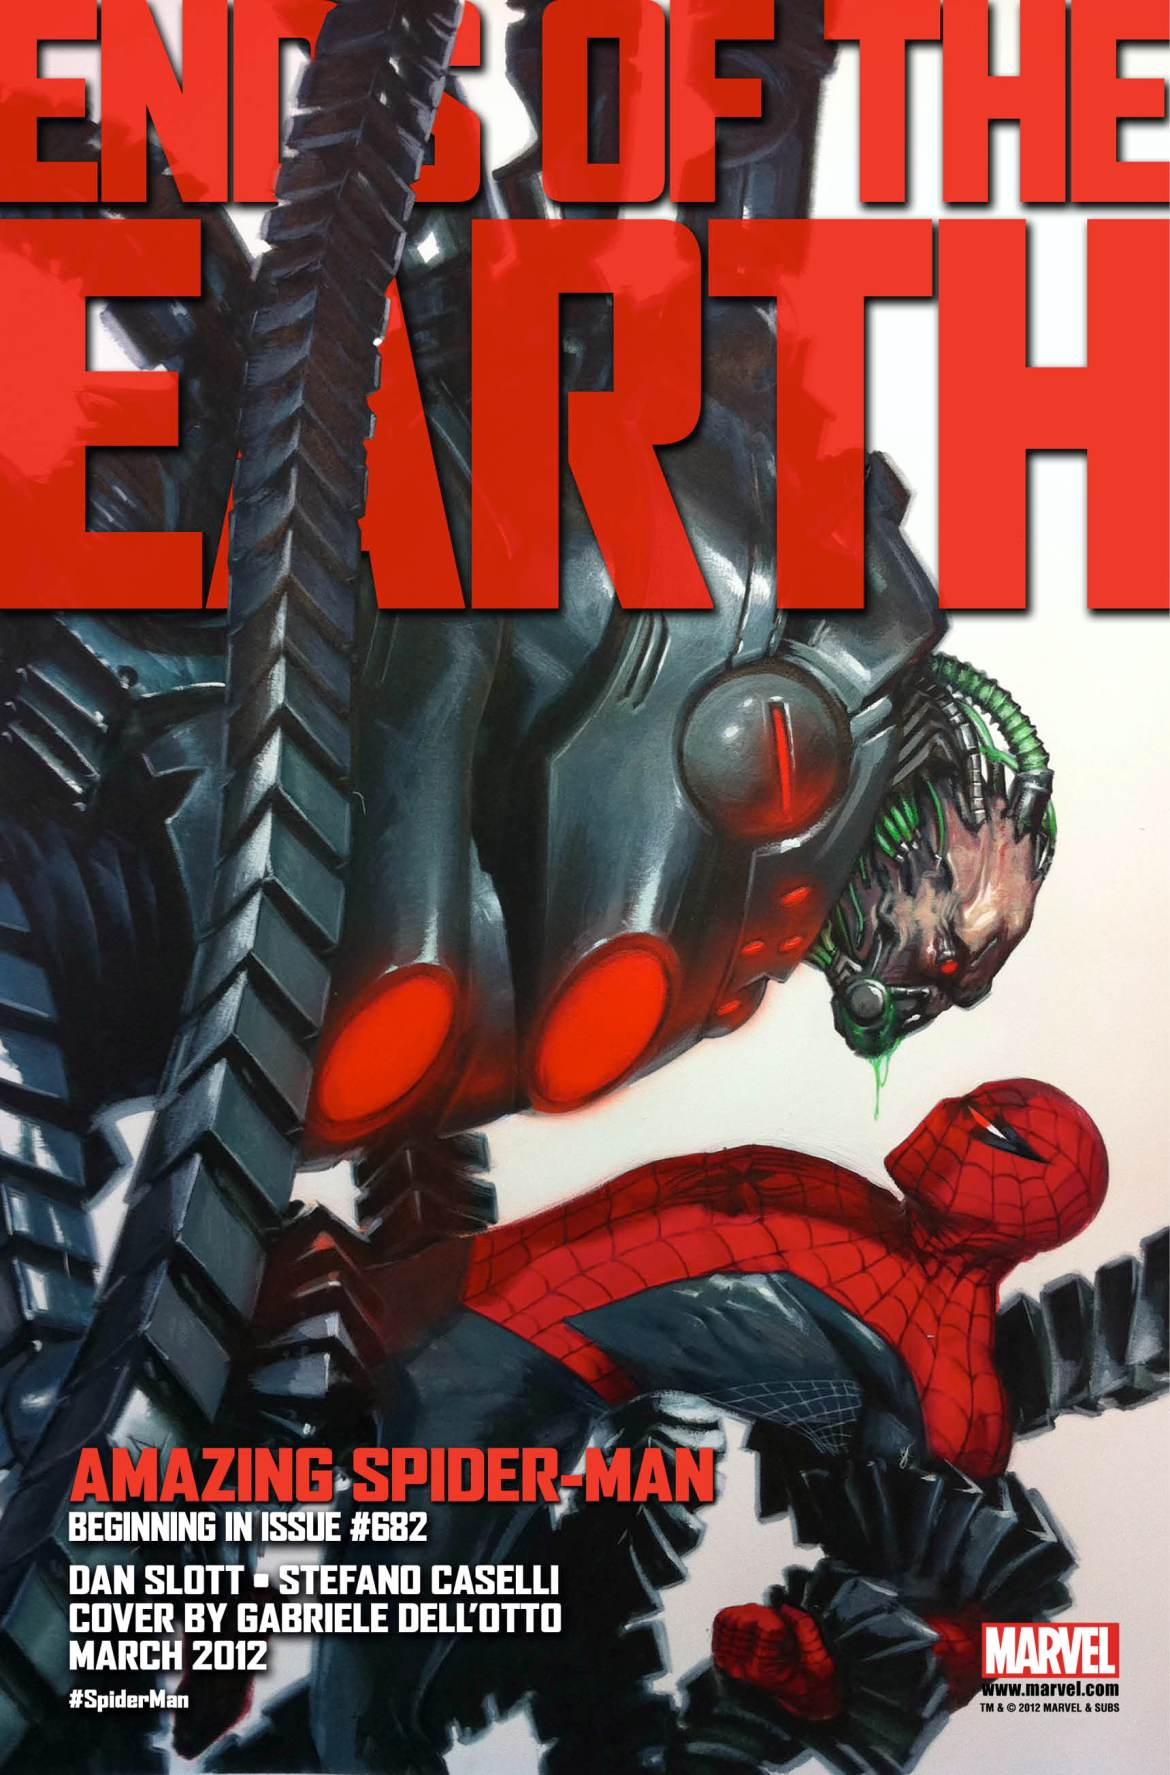 AmazingSpiderMan_EndsOfTheEarth_Teaser1 Mysterio takes Spider-Man to THE ENDS OF THE EARTH